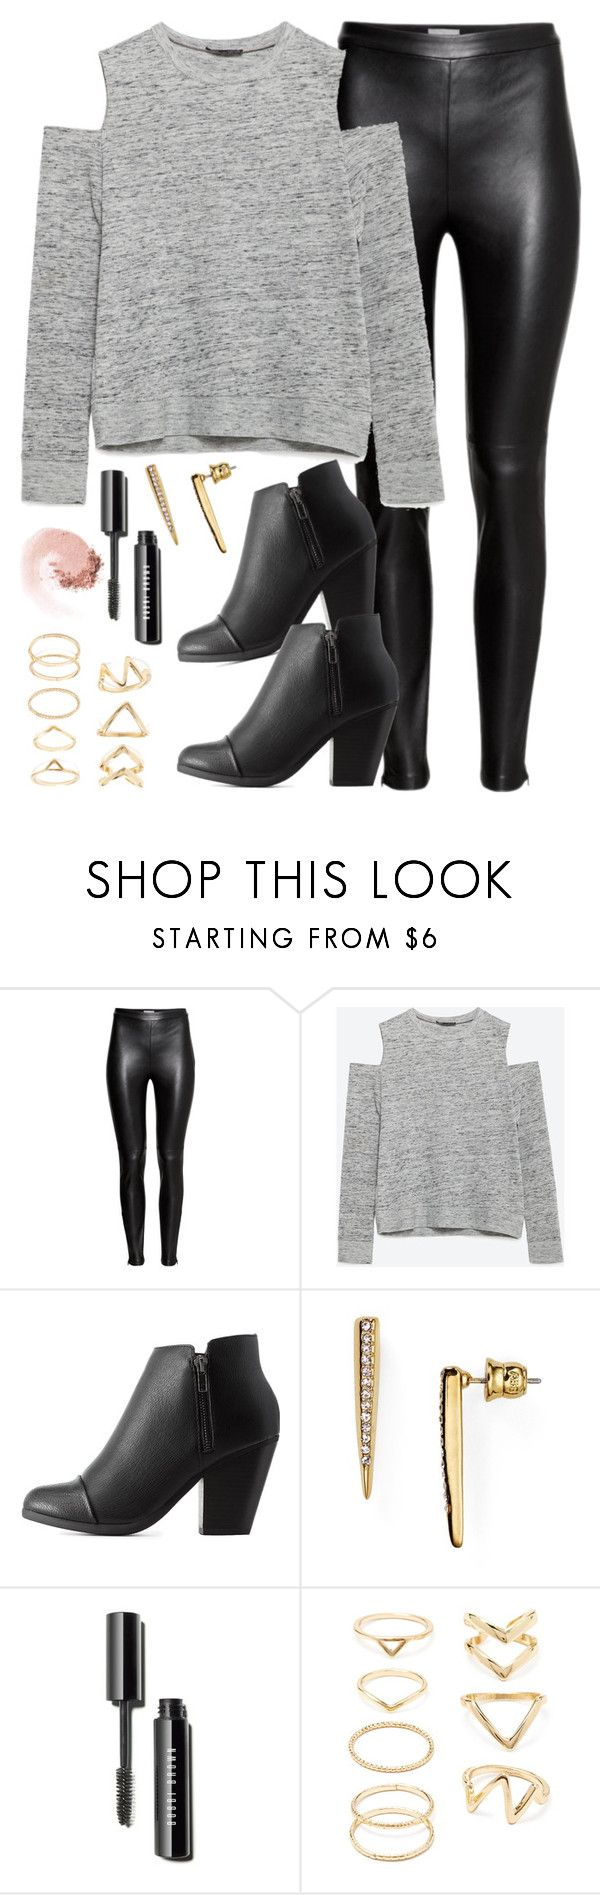 """""""Edgy Hanna Marin inspired house party outfit"""" by liarsstyle ❤ liked on Polyvore featuring H&M, Zara, Charlotte Russe, ABS by Allen Schwartz, Forever 21, NARS Cosmetics, NightOut and WF"""